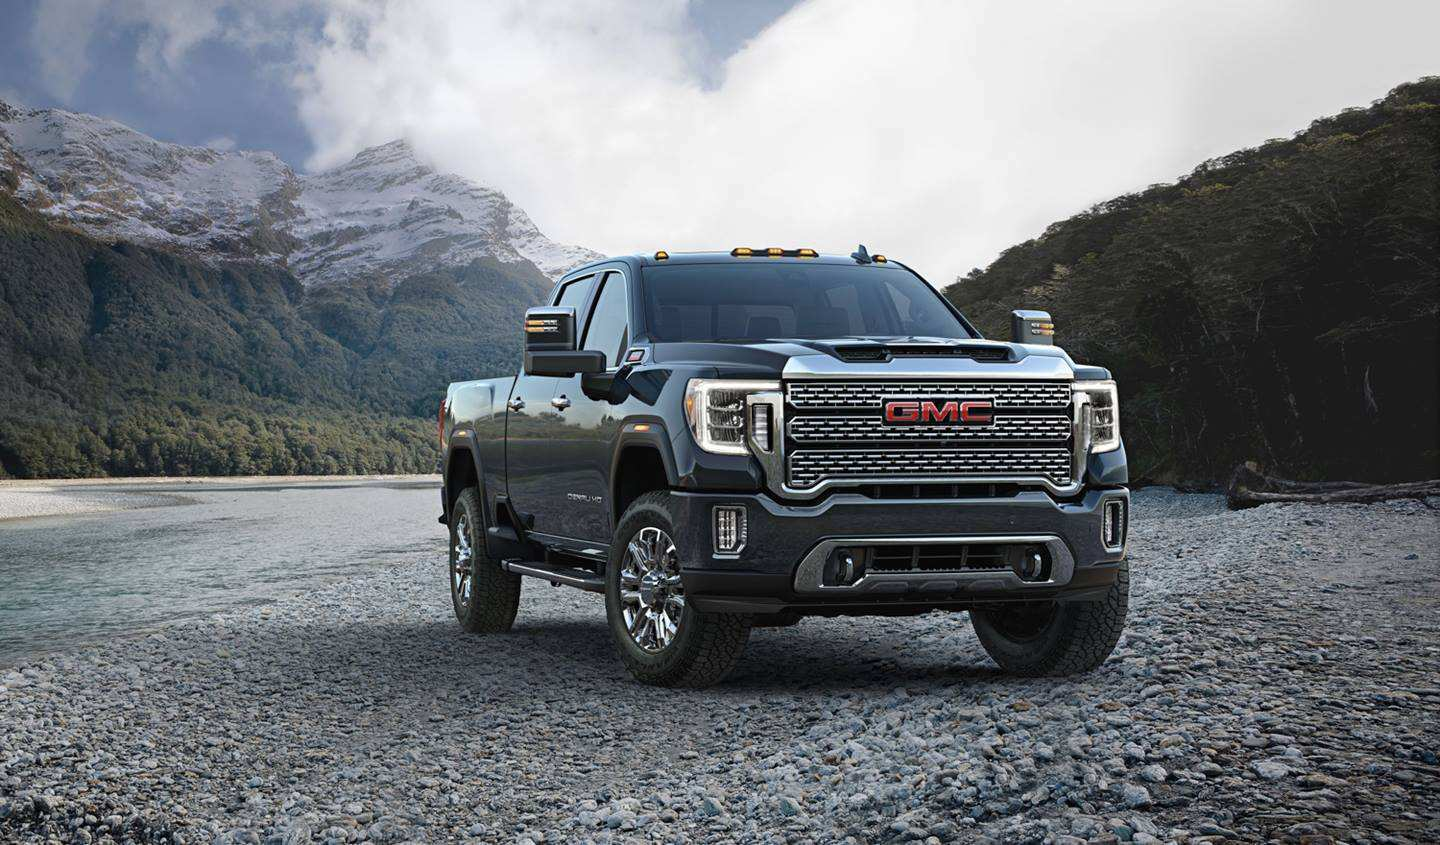 81 The Best 2020 Gmc Sierra Denali 1500 Hd Release Date